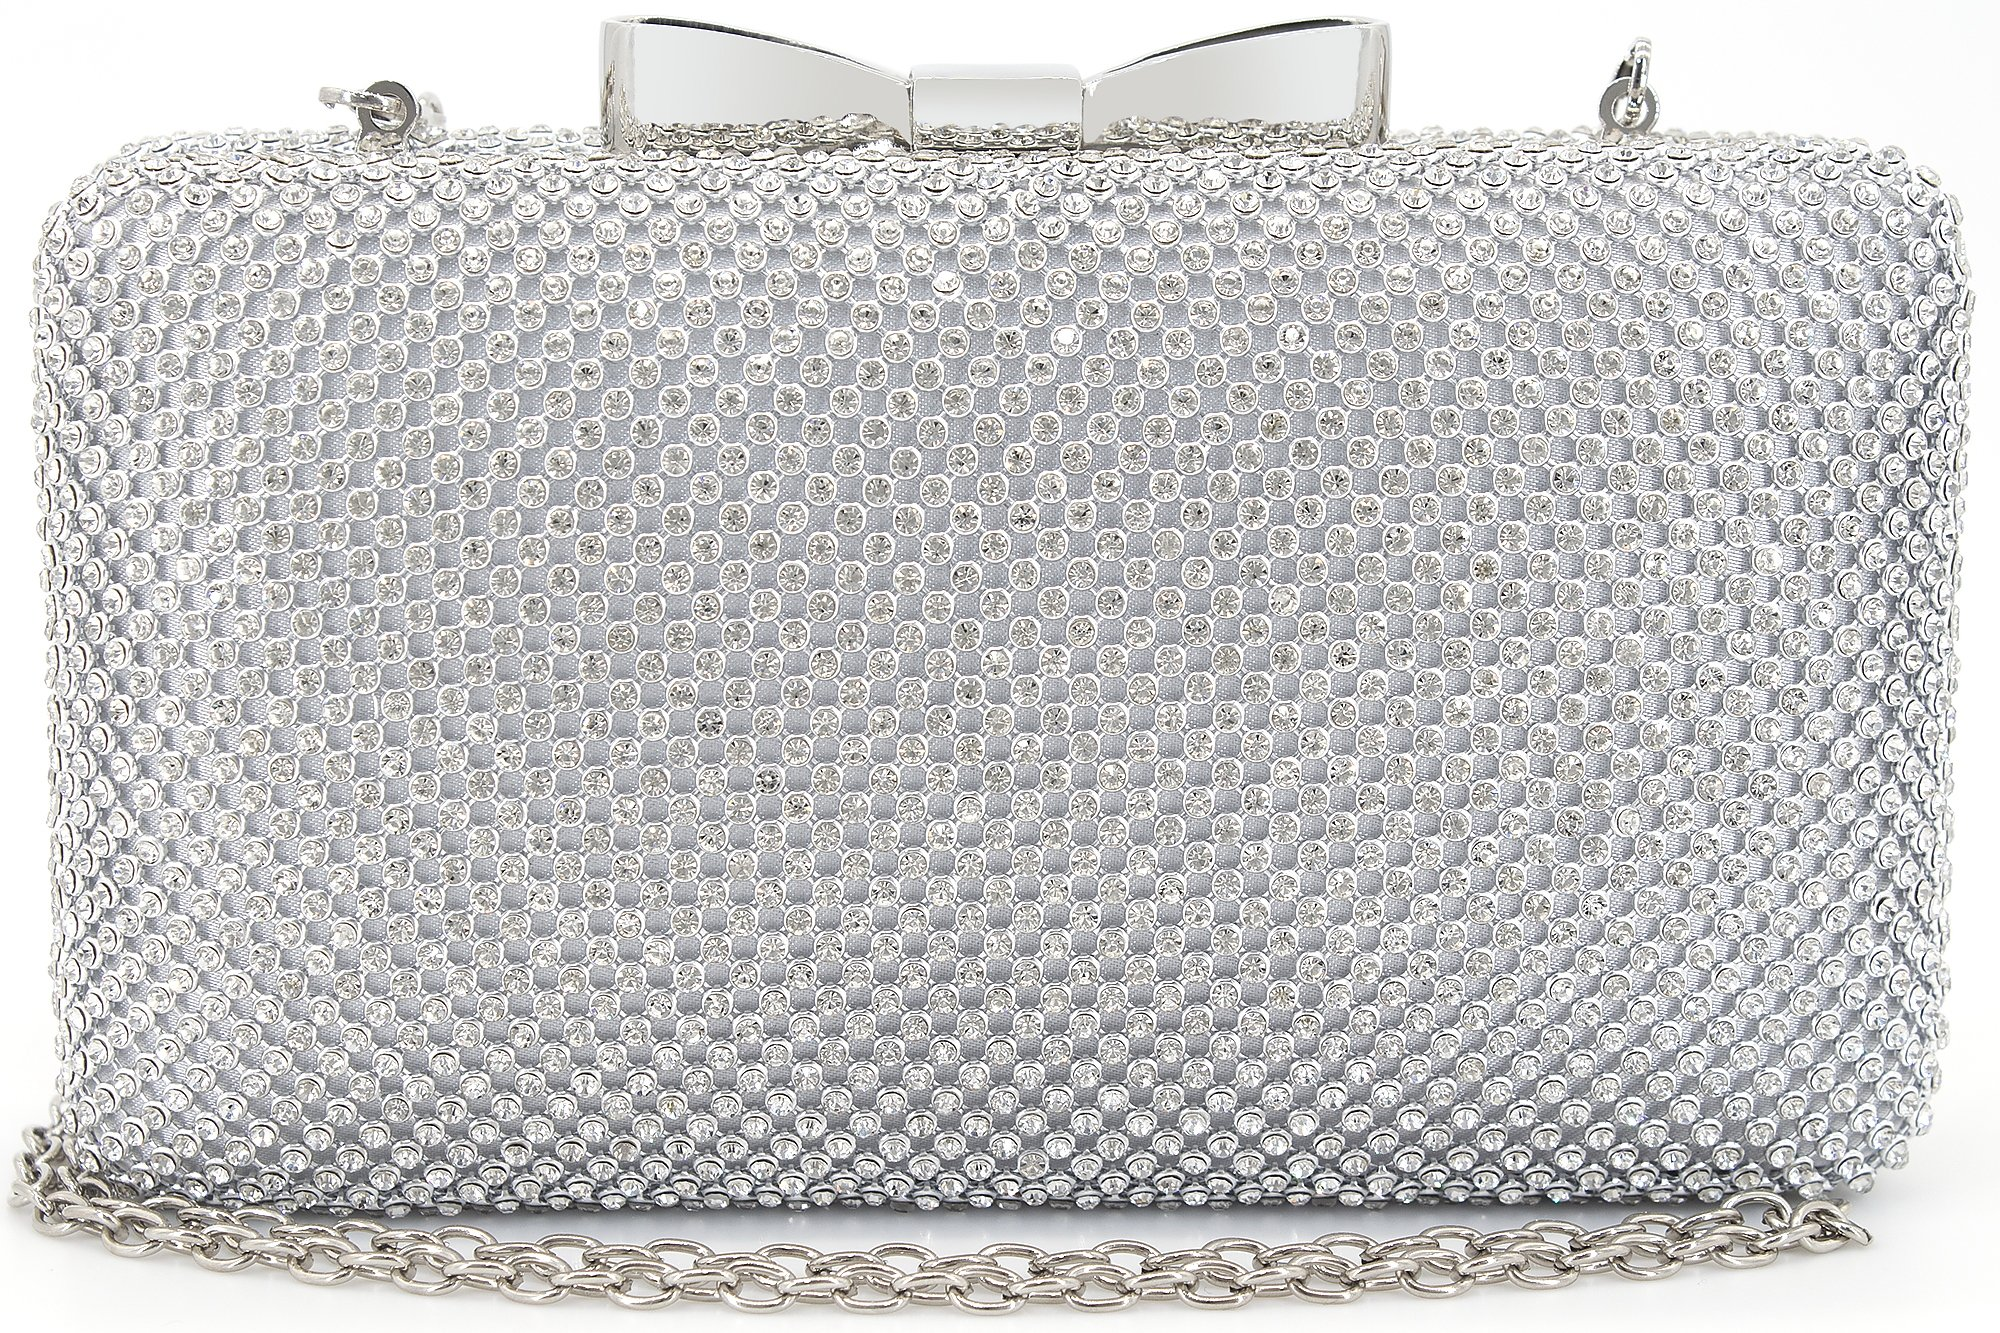 Bow Clutches Women Evening Bag for Wedding Prom Cocktail Party Rhinestone Crystal Clutch Purse Silver